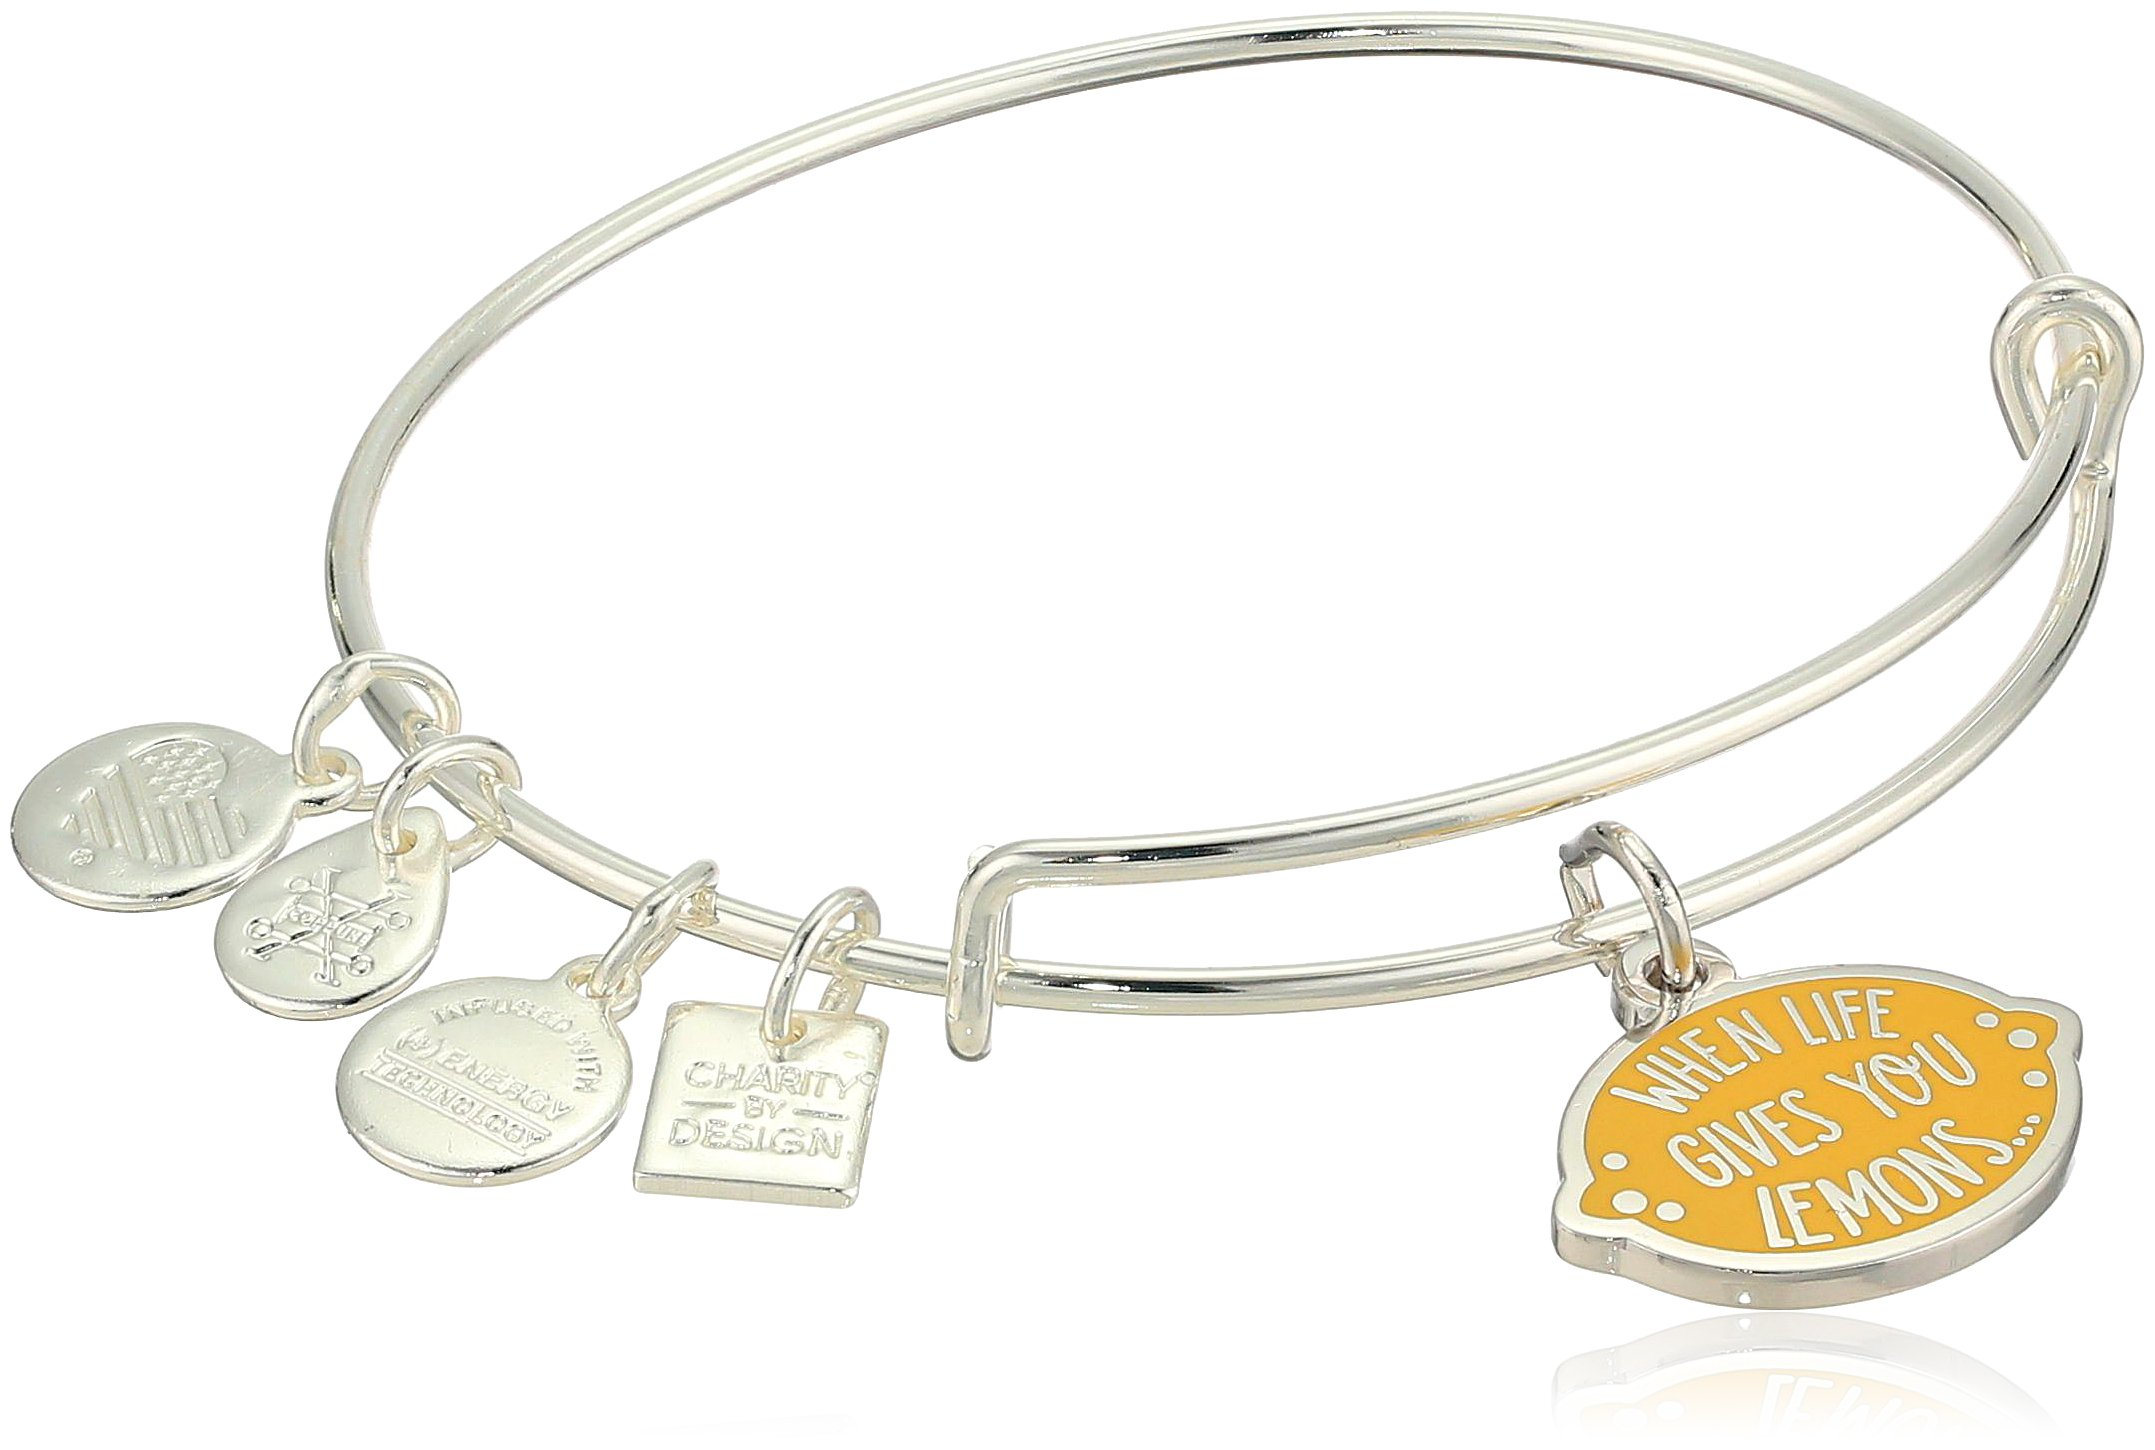 Alex and Ani Womens Charity By Design, When Life Gives You Lemons Bangle Bracelet, Shiny Silver, Expandable